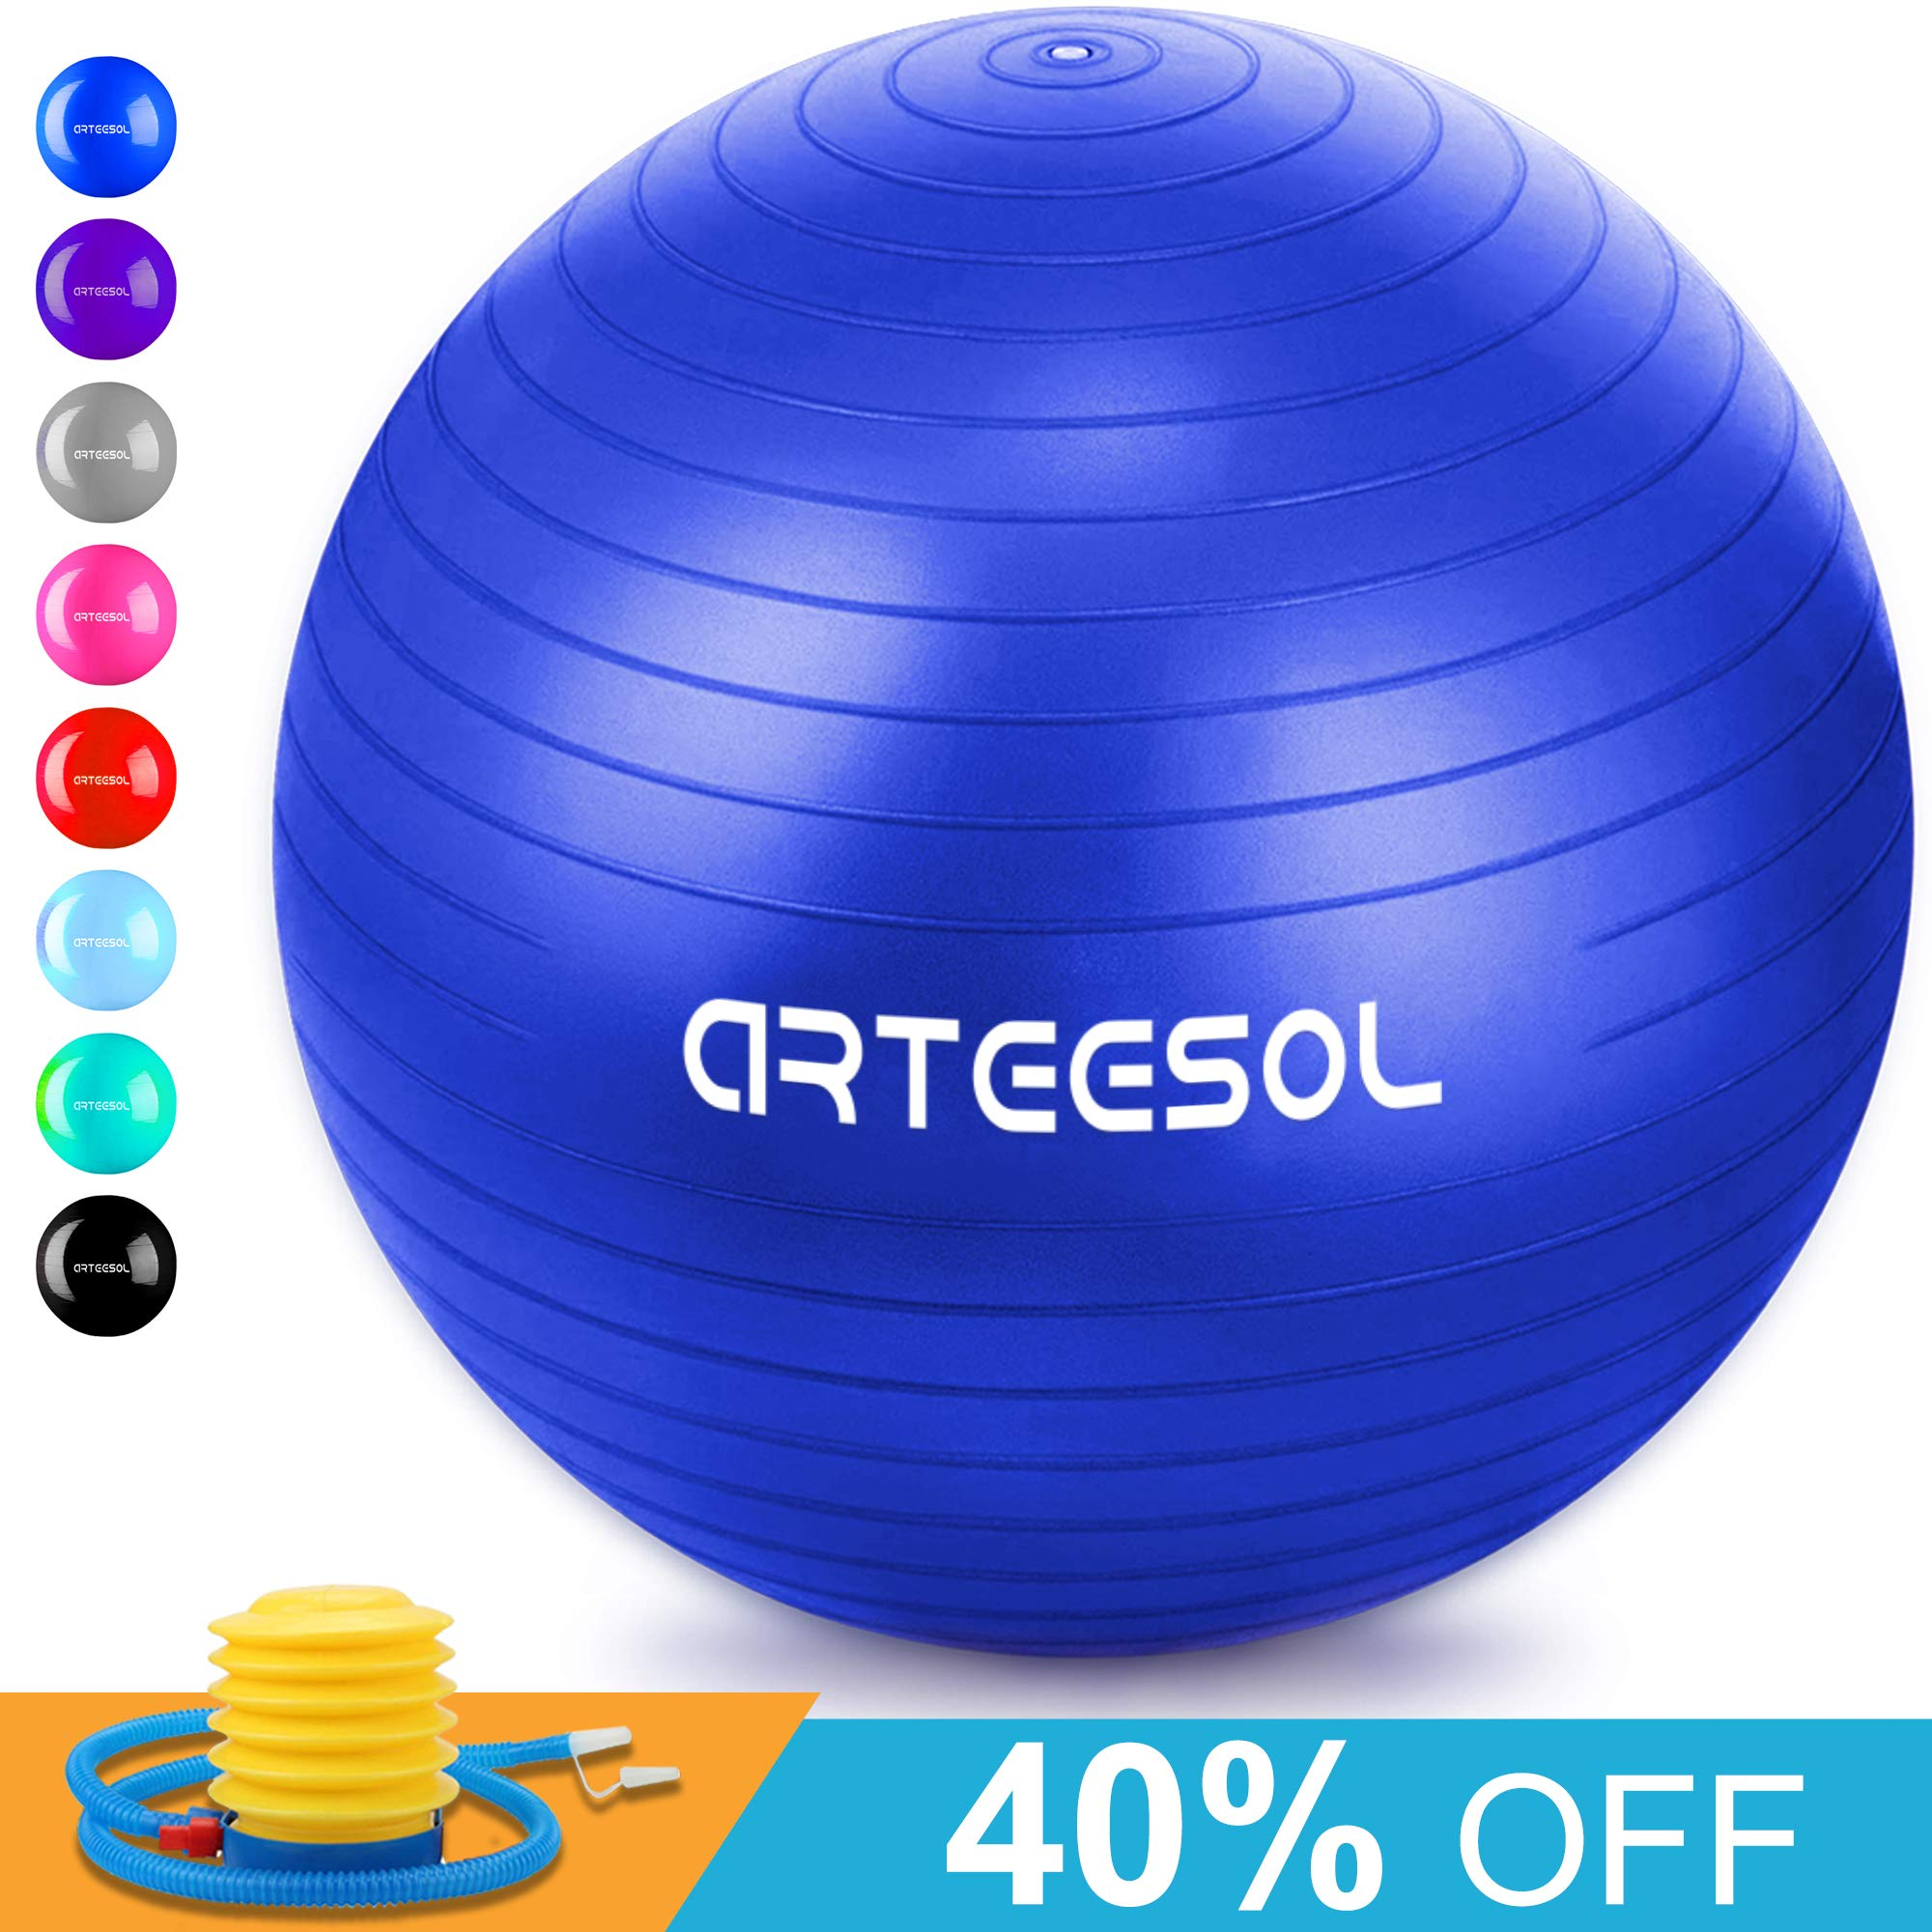 Arteesol Exercise Yoga Ball, Extra Thick Stability Ball Chair(45CM-77CM / 5 Colours), Professional Grade Anti Burst & Slip Resistant Balance, Fitness&Physical Therapy, Birthing Ball with Air Pump